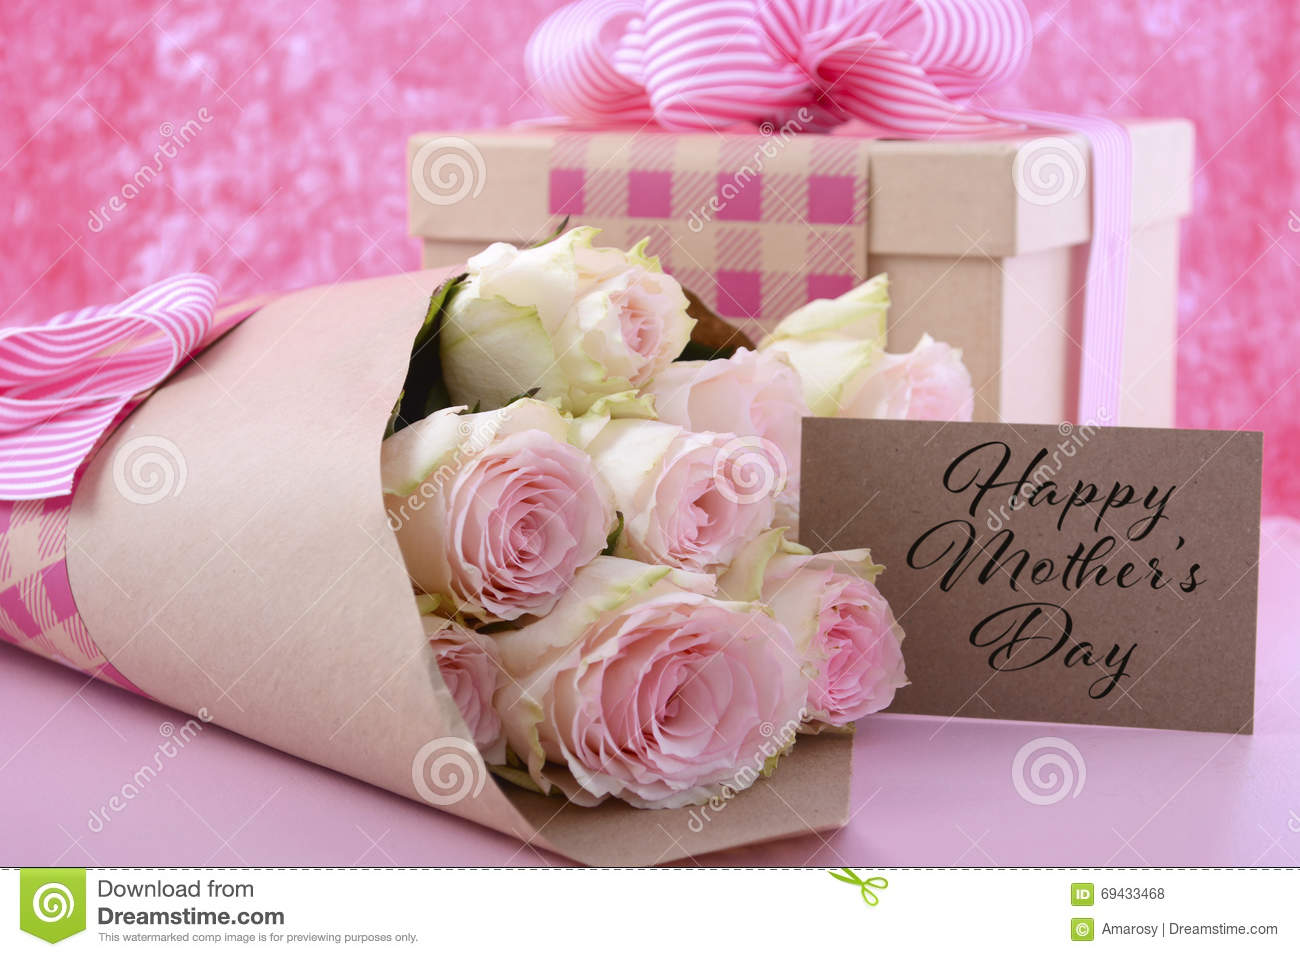 Mothers day gift and flowers stock photo image of check pink royalty free stock photo negle Choice Image